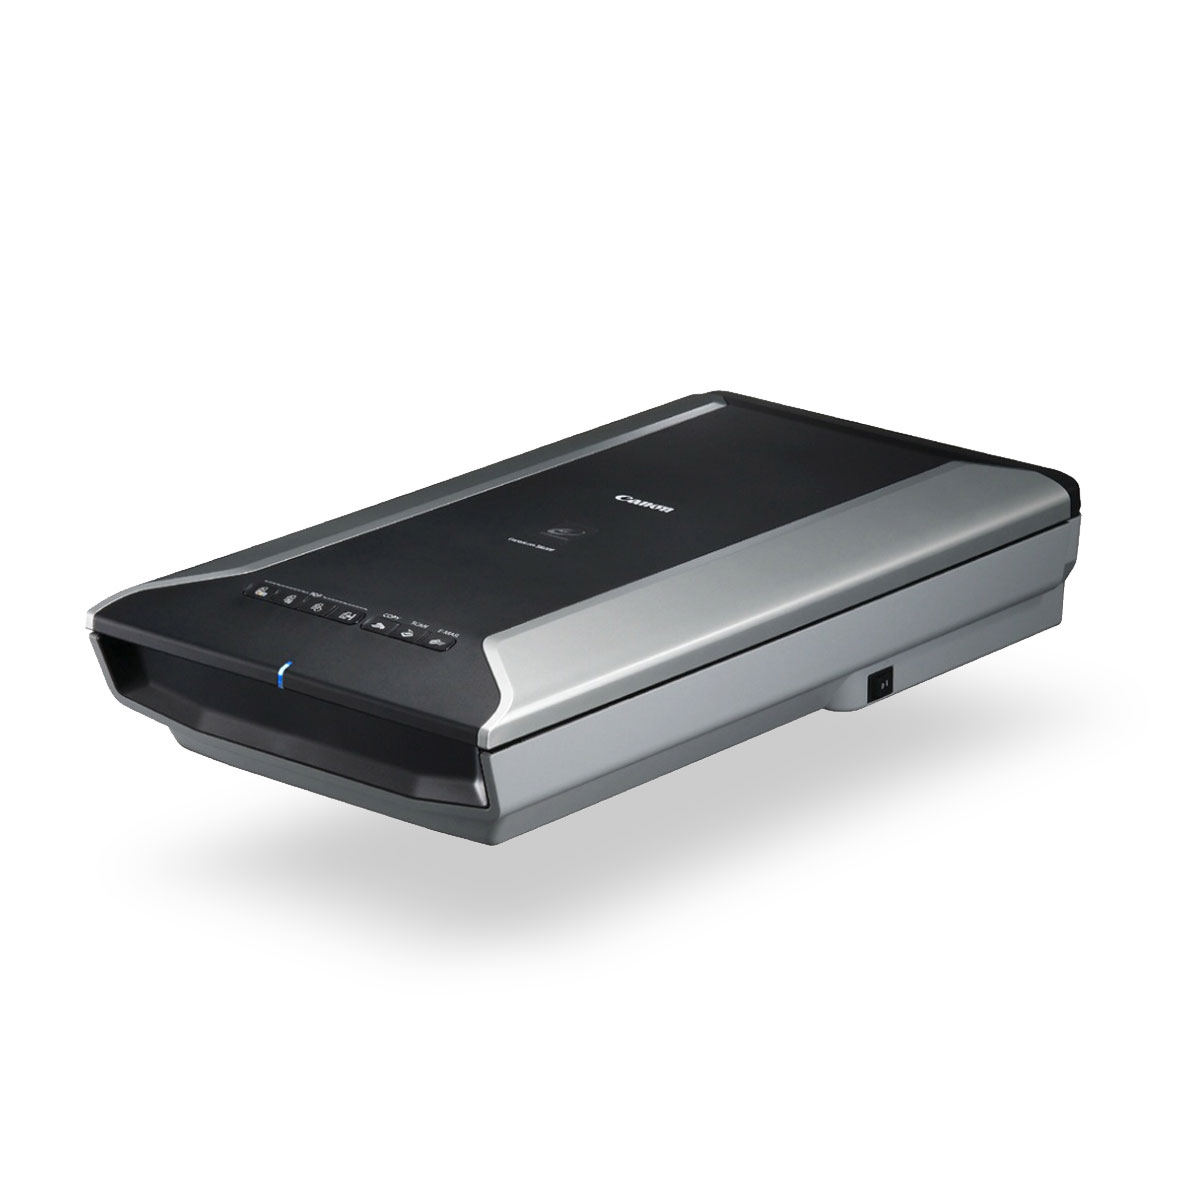 CanoScan 5600F front